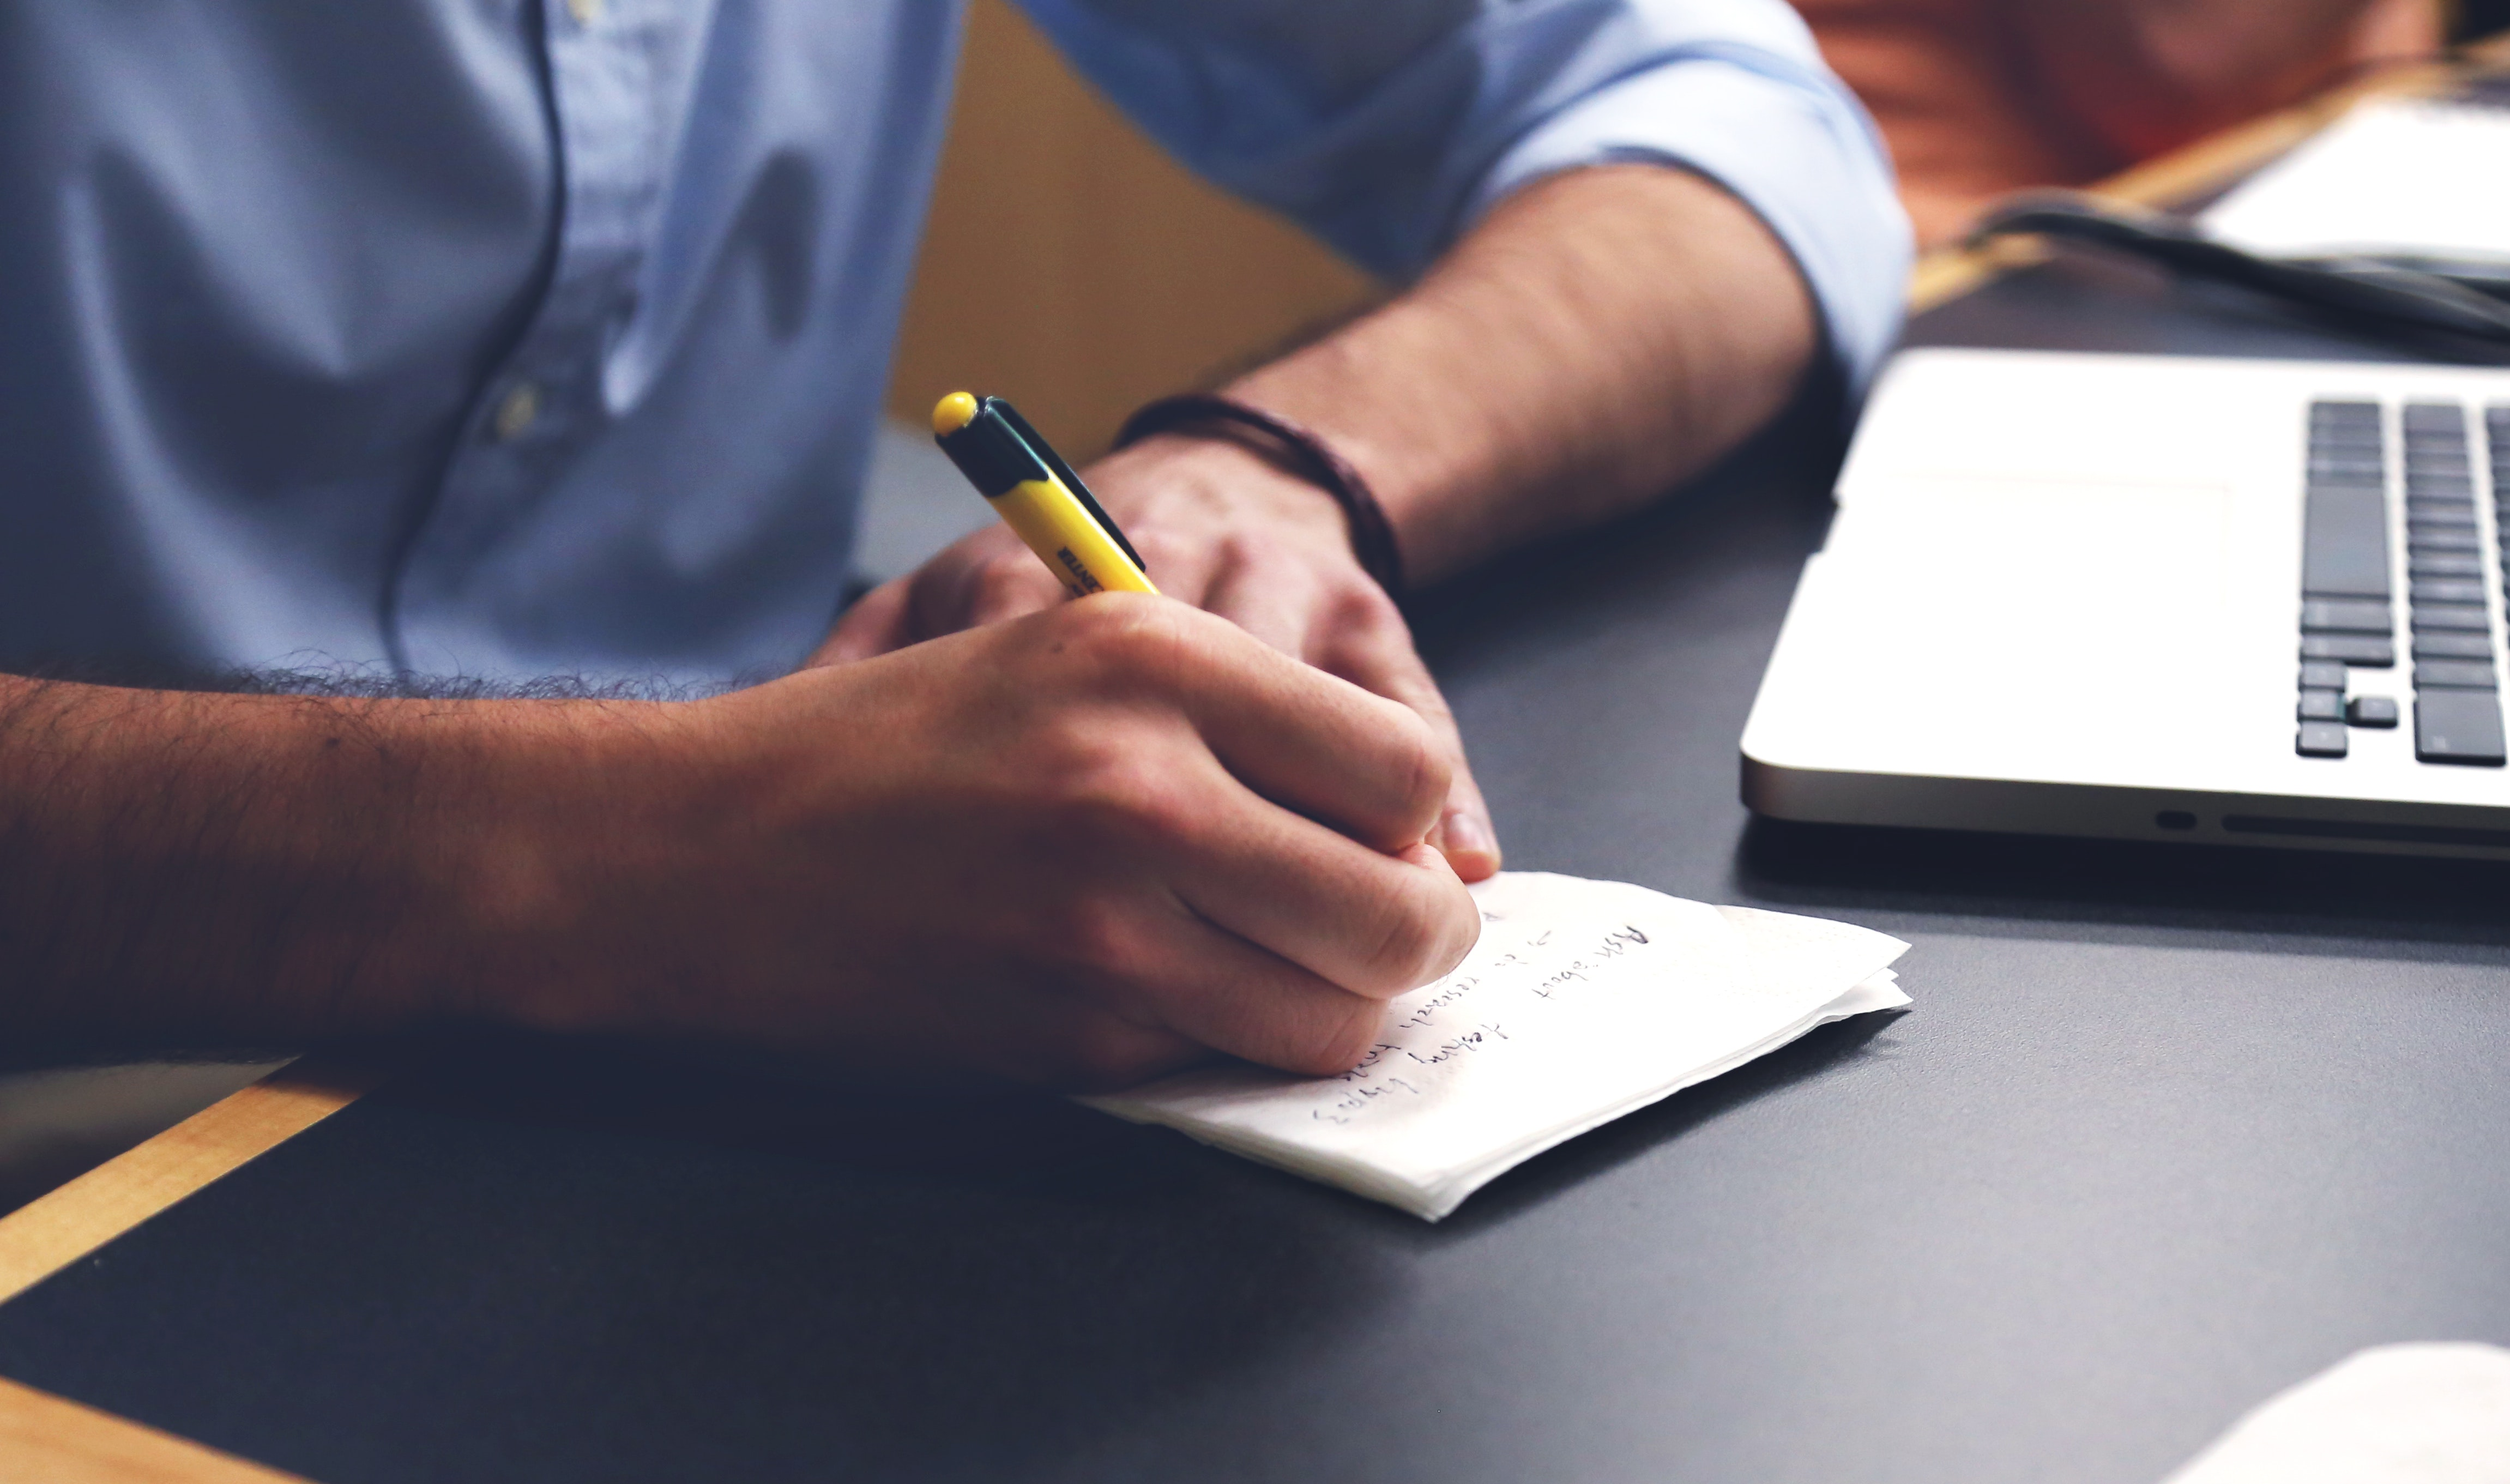 Hand Writing Notes at a Desk